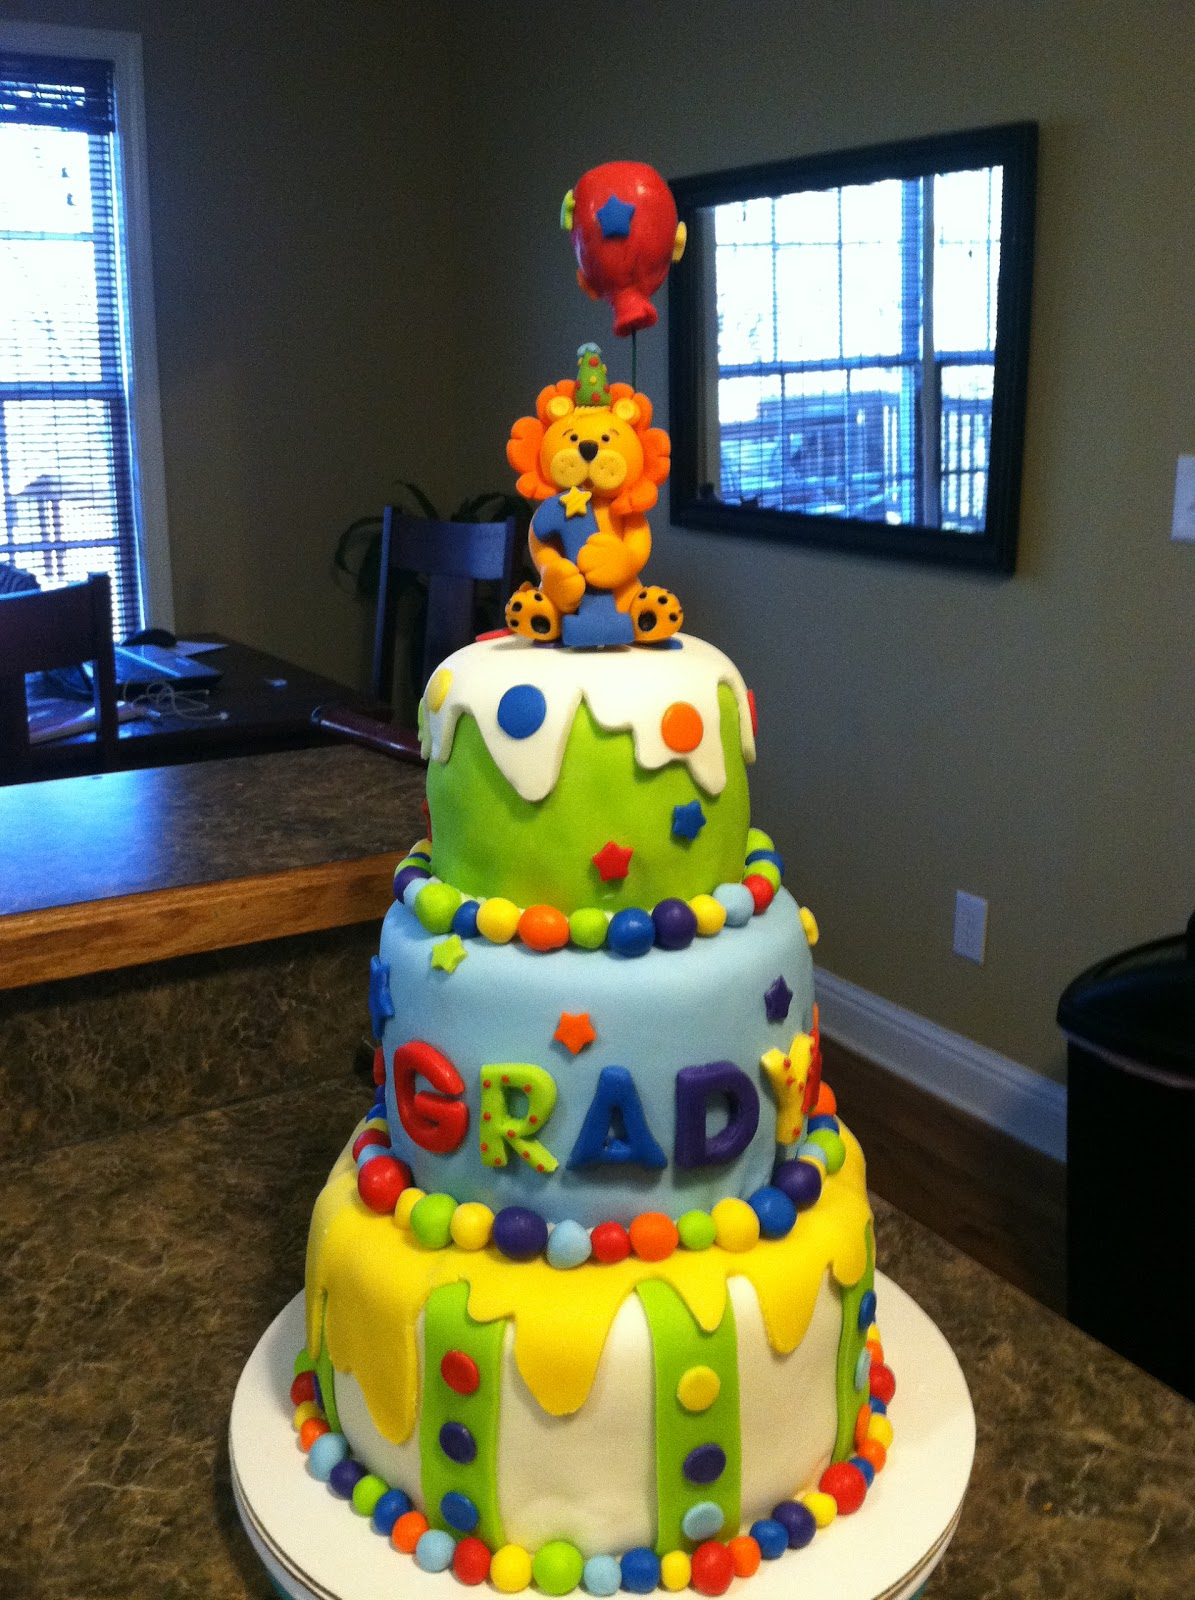 Cake Ideas For Baby Boy 1st Birthday : Brandi Cakes: Baby Boy First Birthday Circus Cake